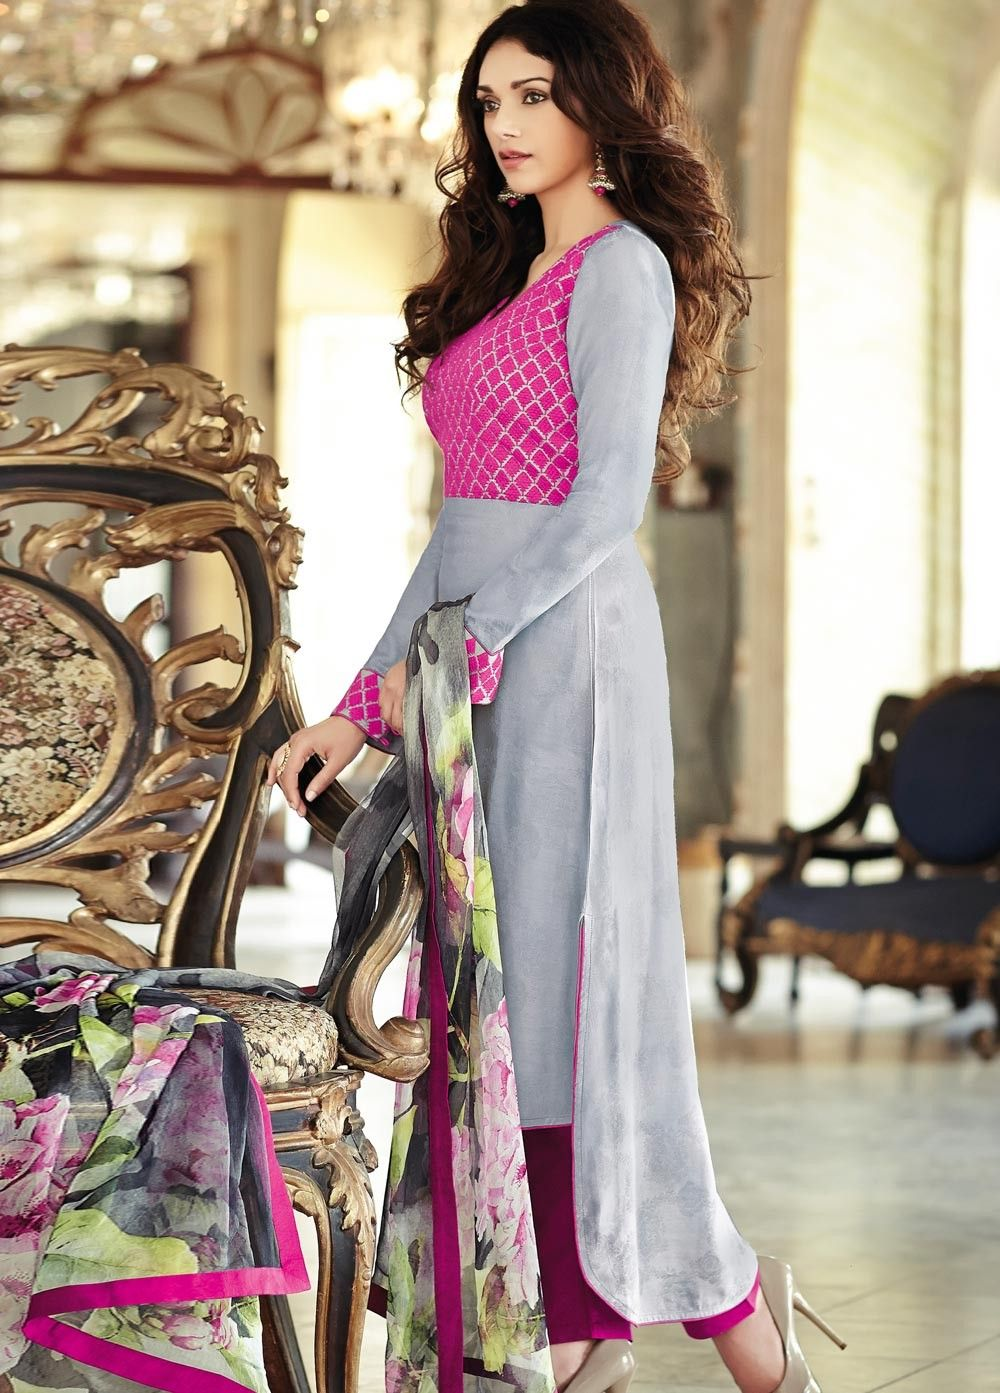 Bollywood Aditi Rao Hydari #Cotton Jacquard #Suit at Manndola.com ...